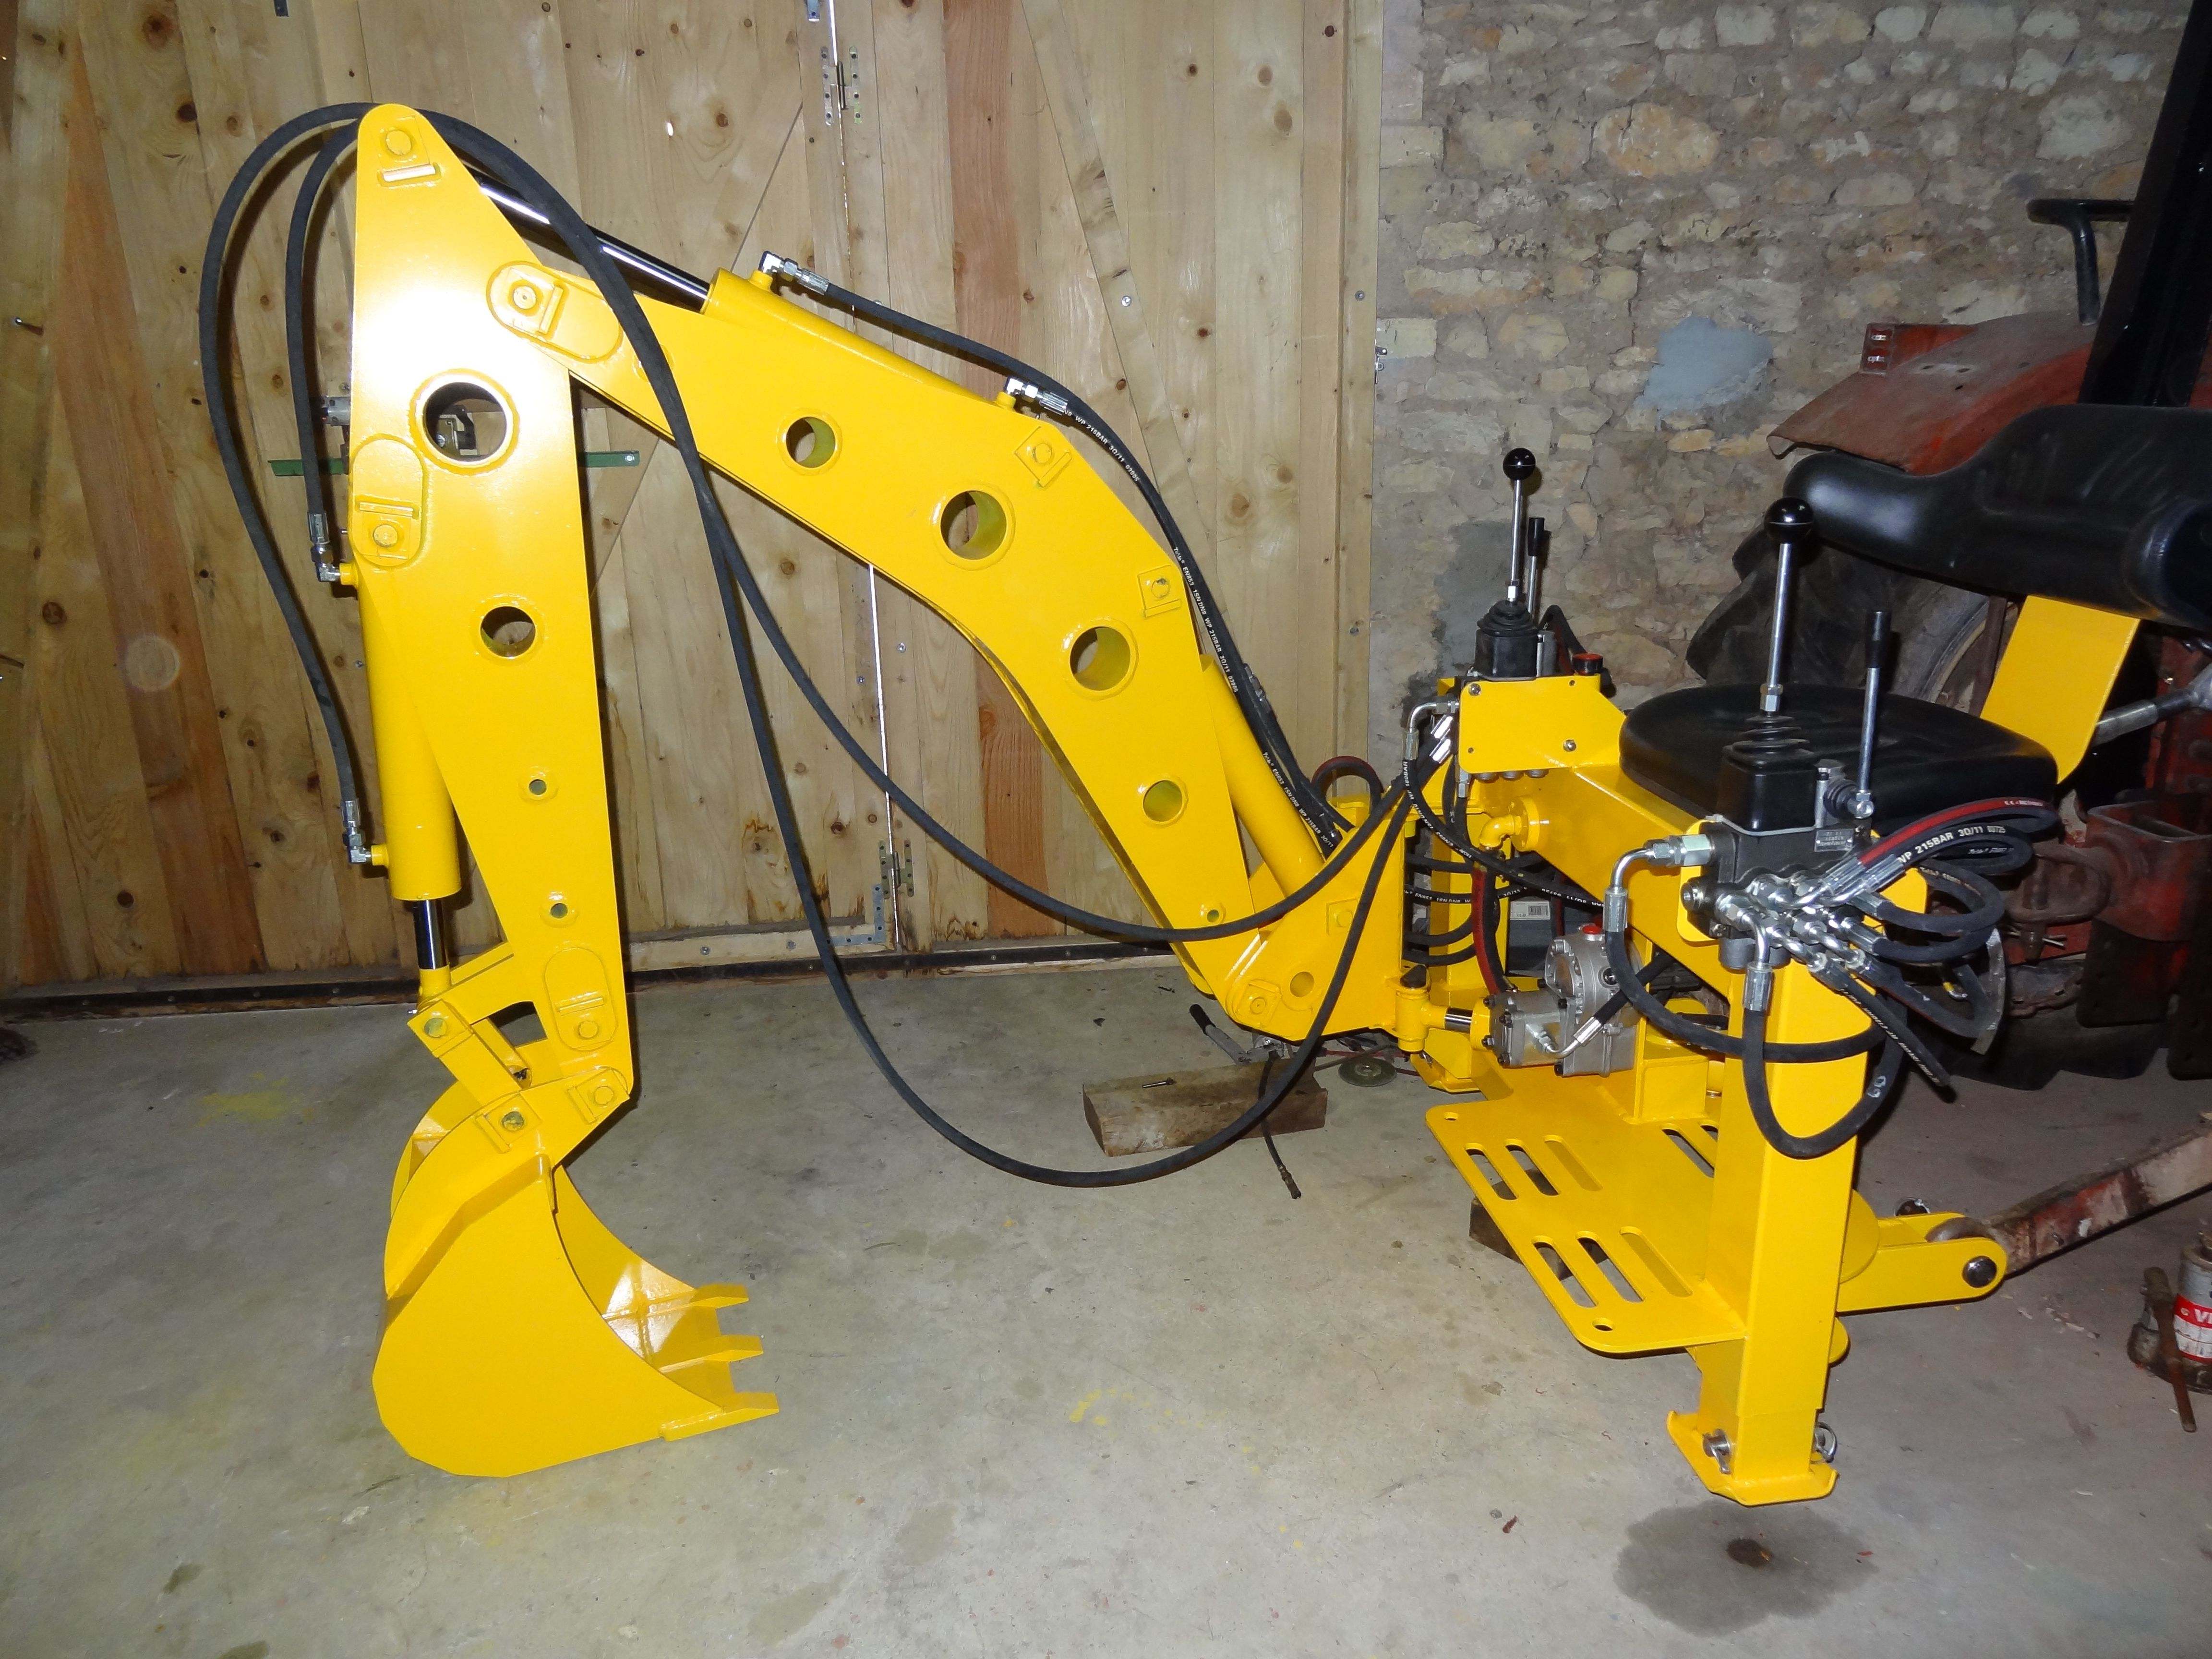 Excavator Hydraulic Arm Project : Homemade backhoe attachment plans ftempo